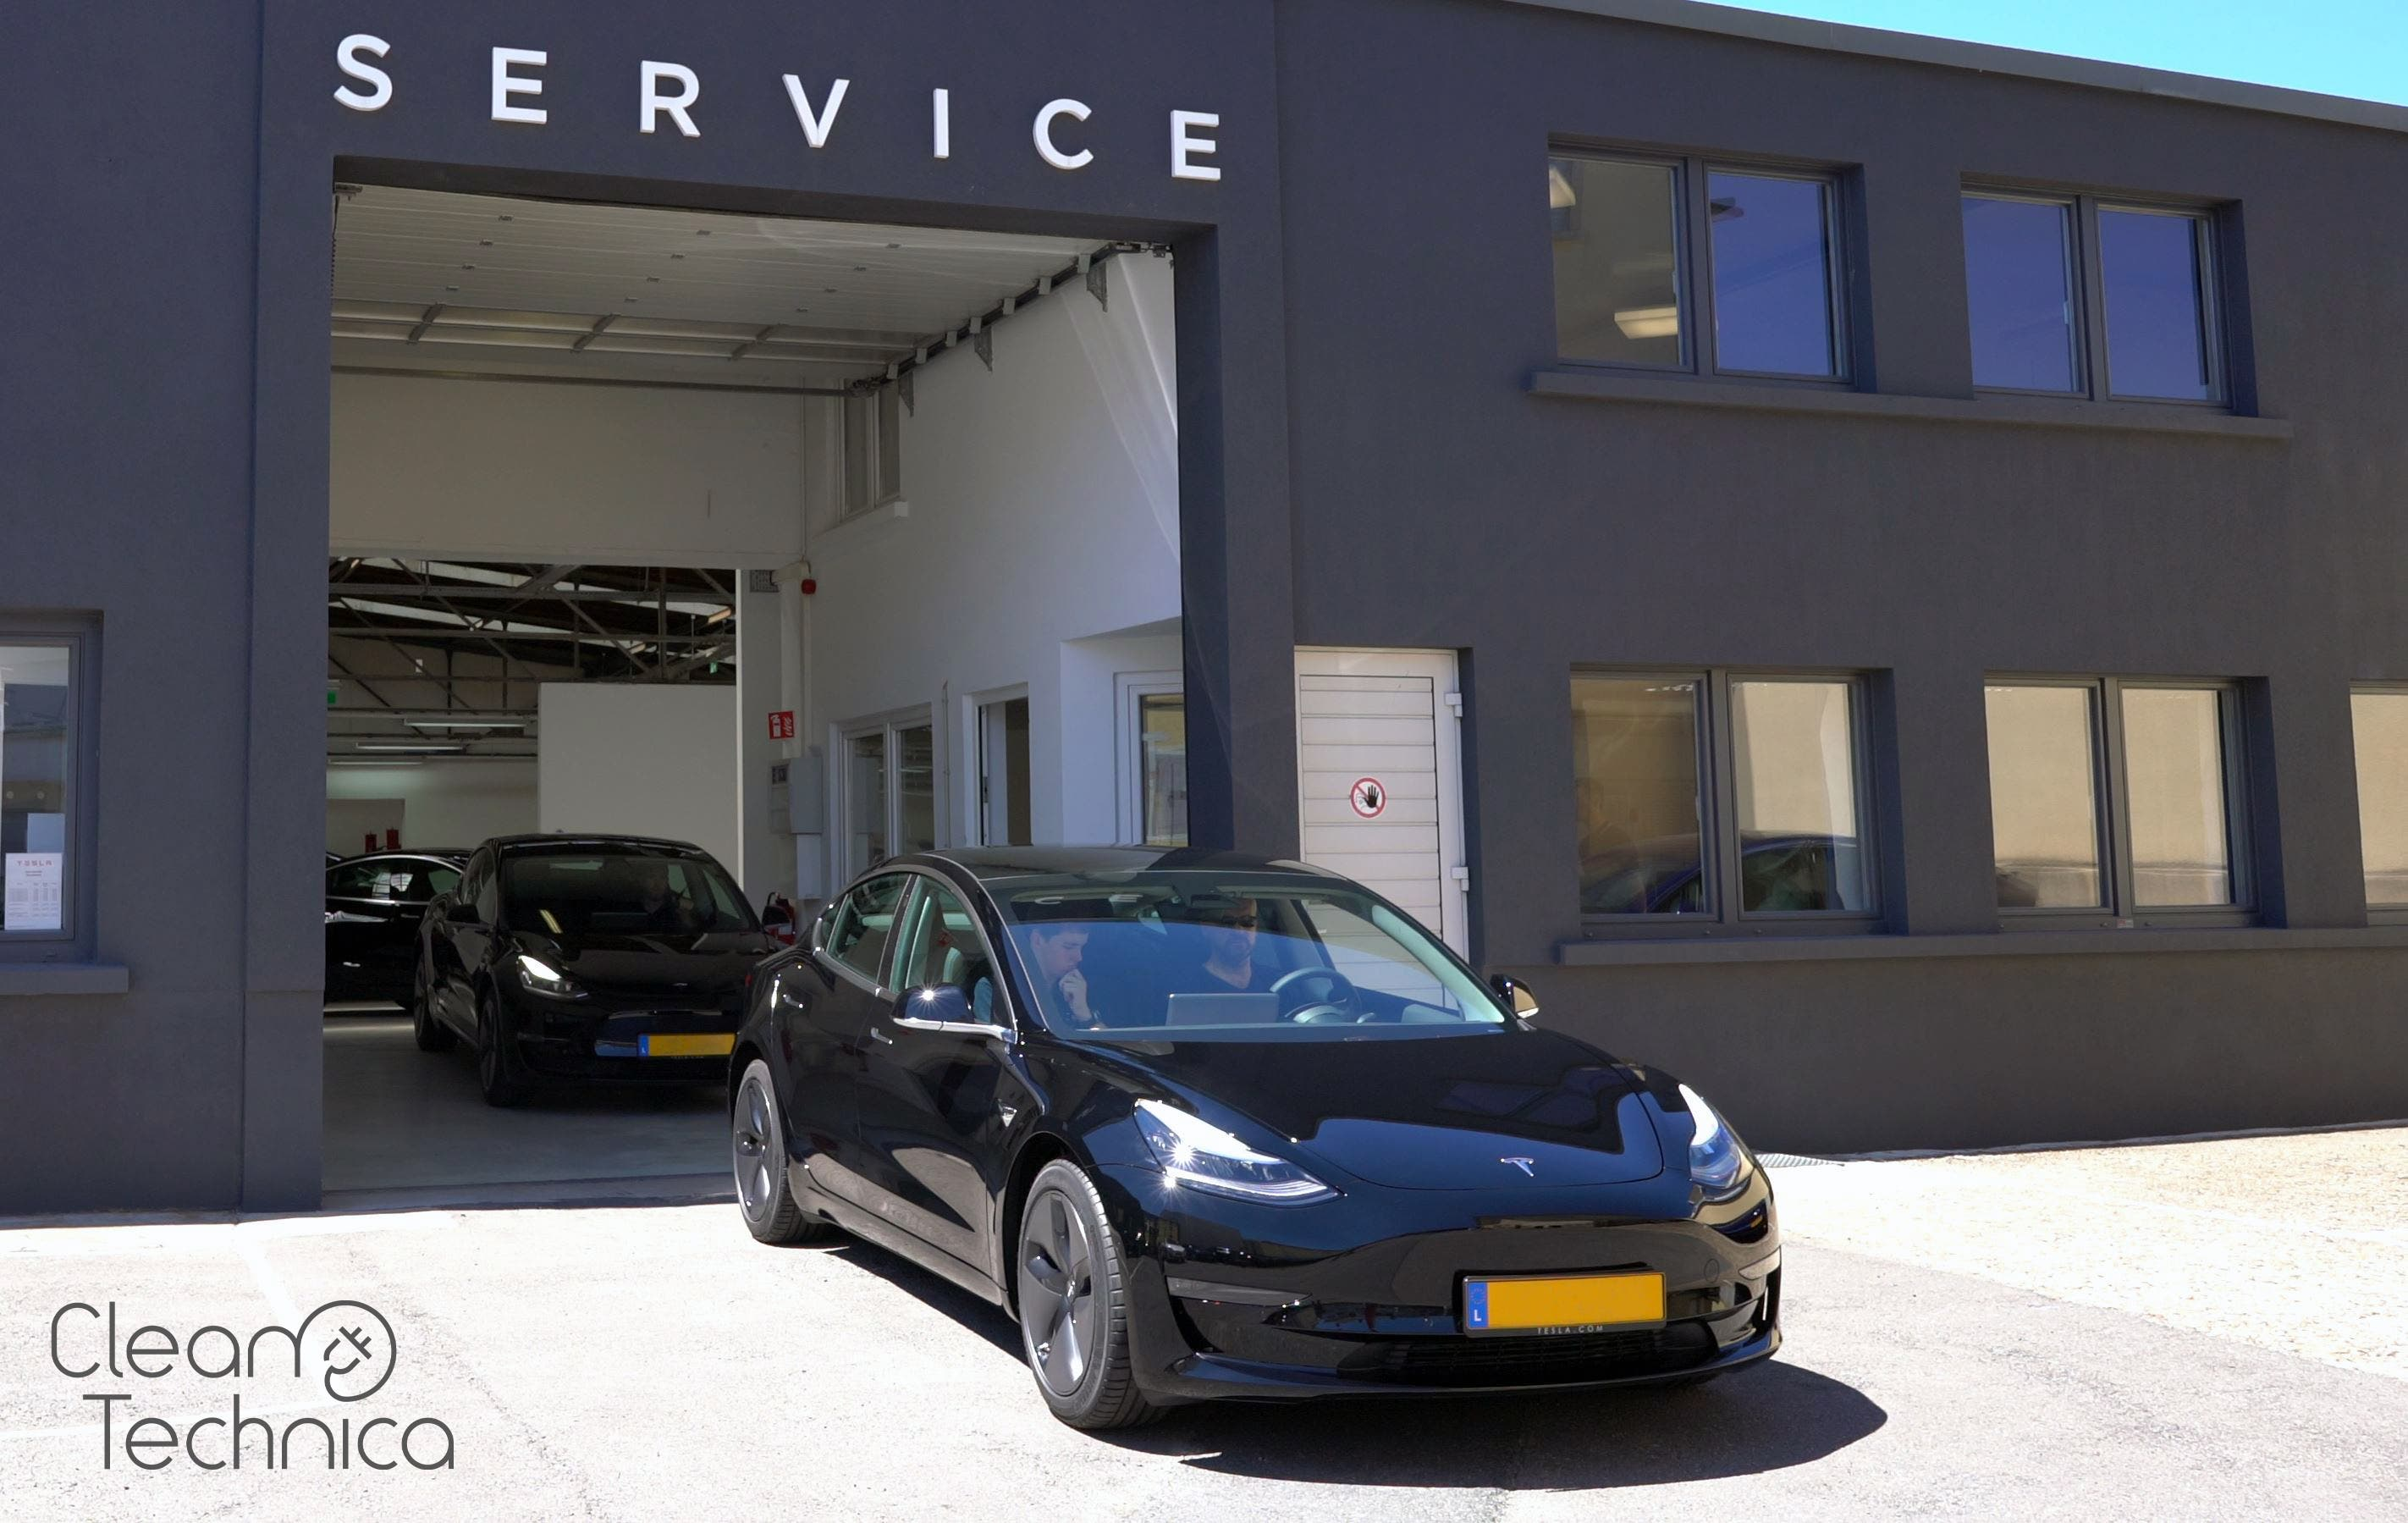 Reports: Tesla Has Already Sold Out Of Vehicles In Q2 2021